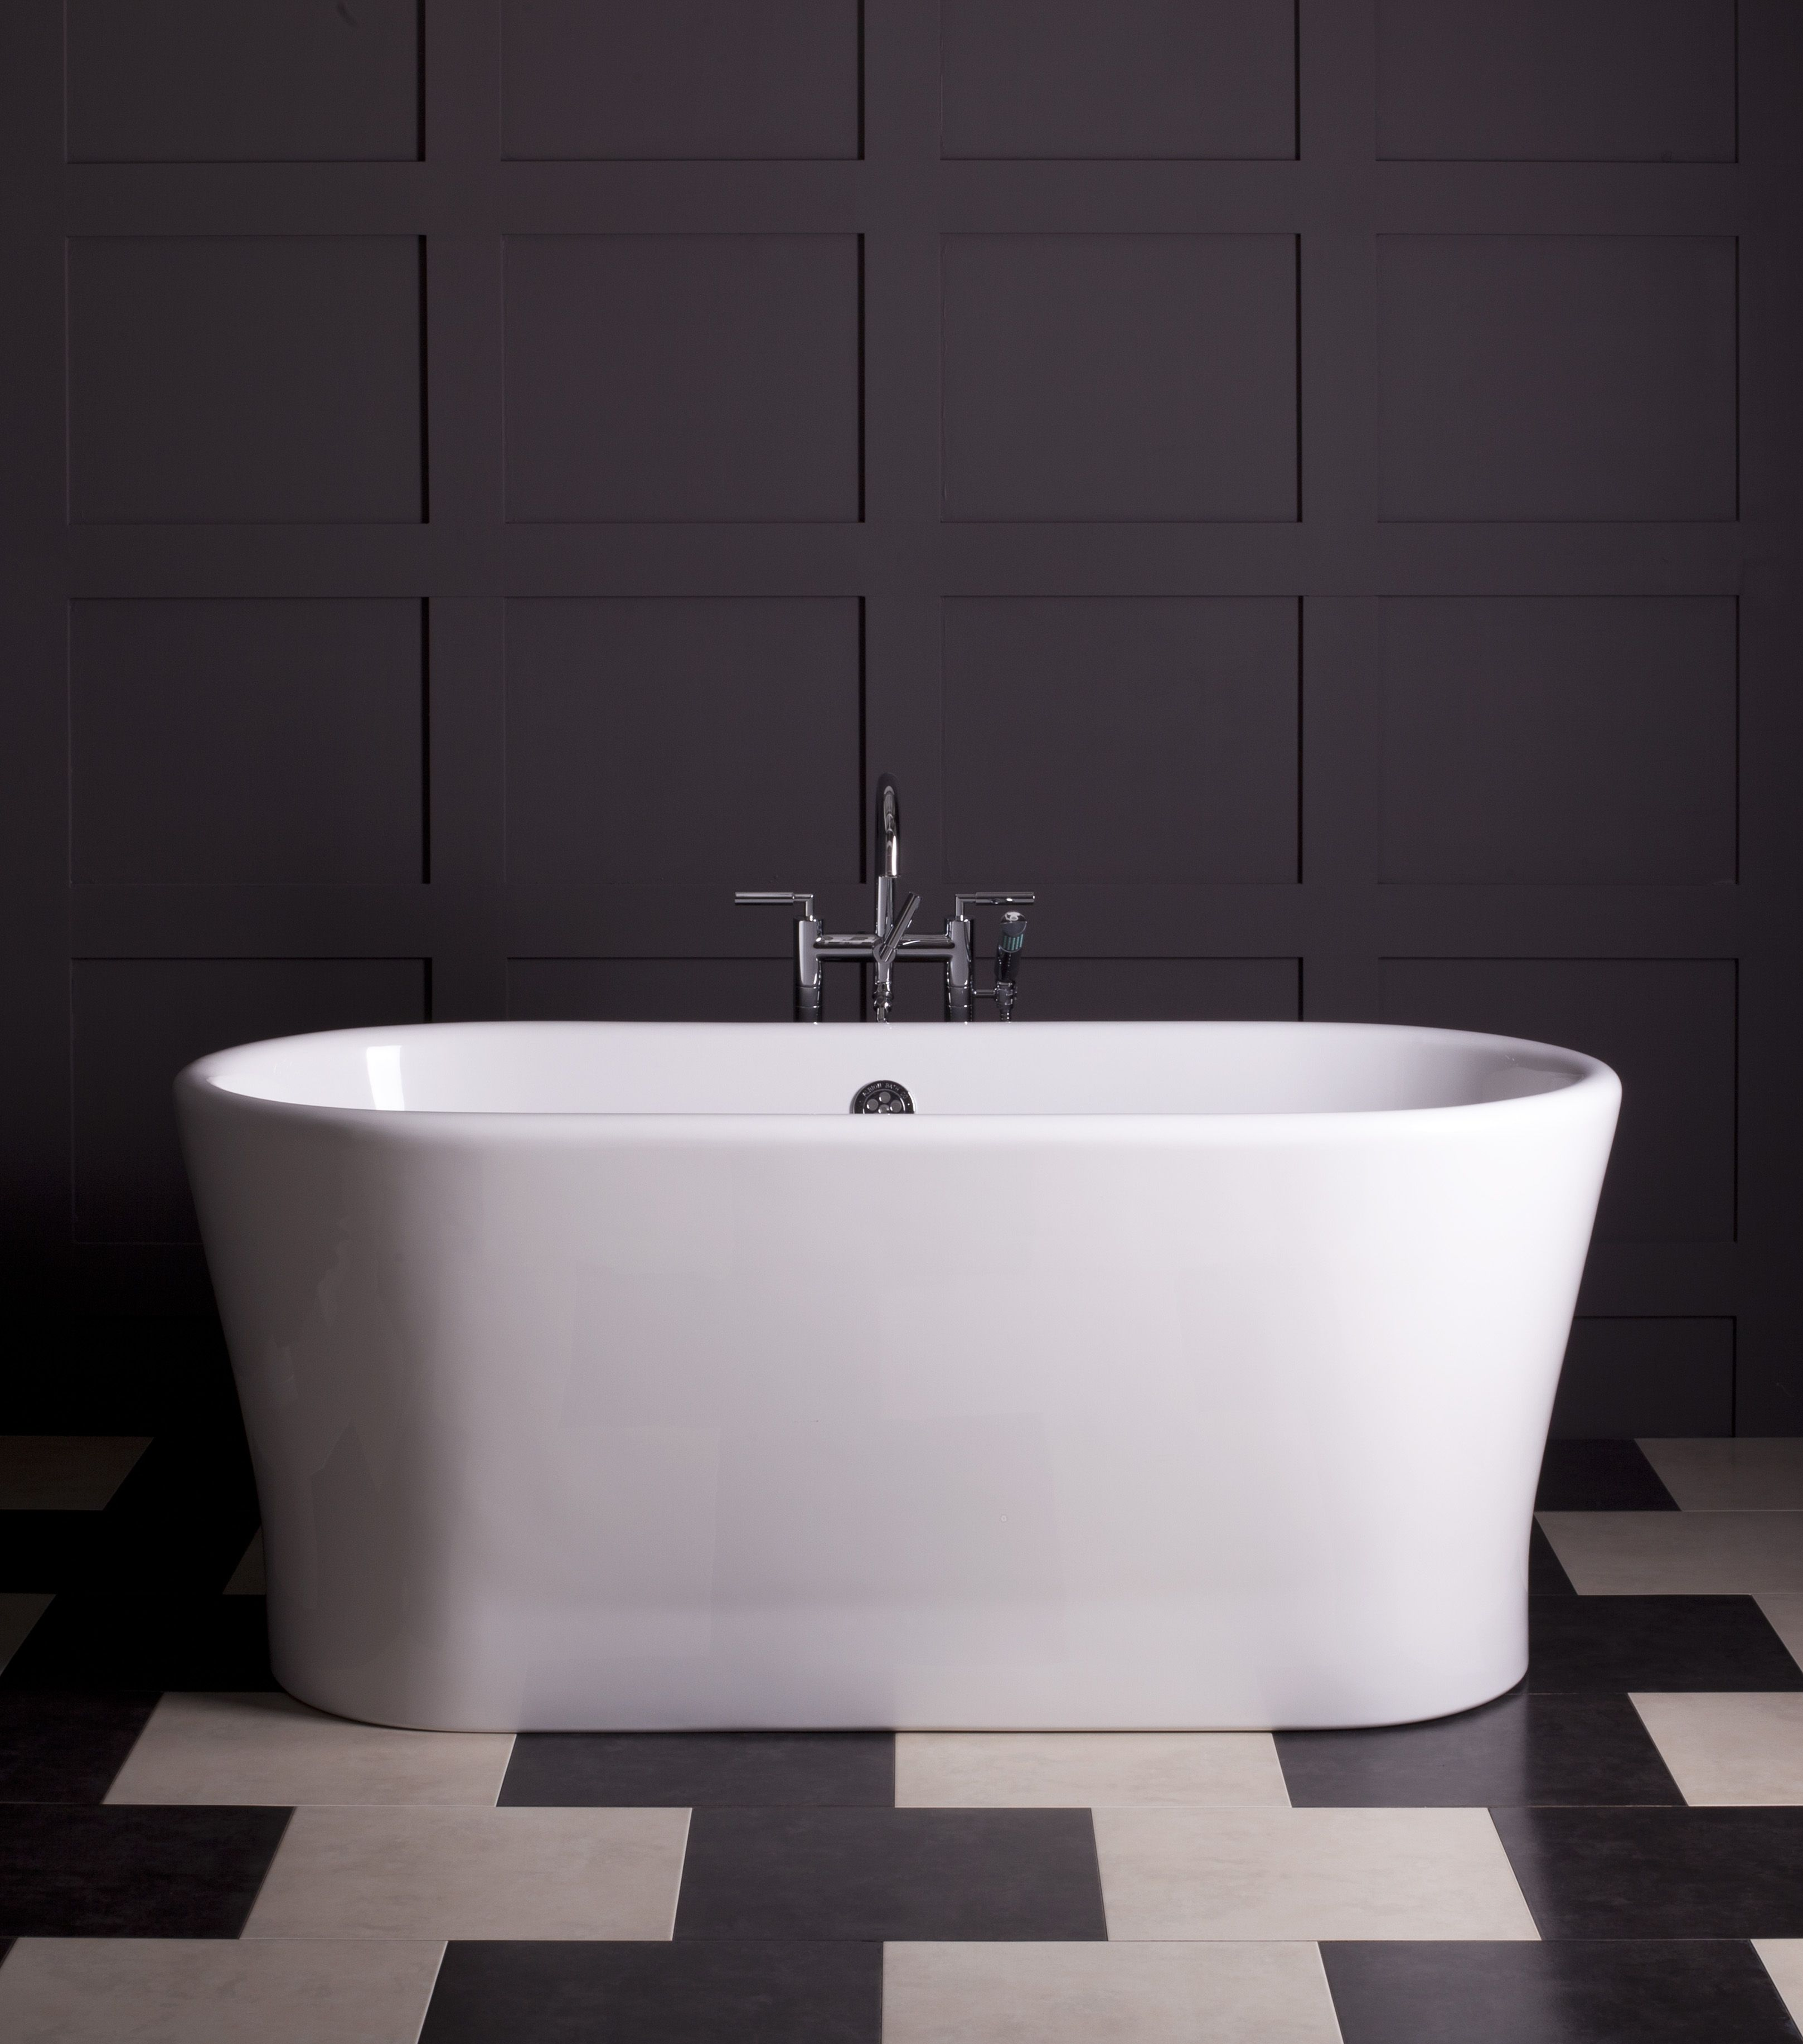 The Cozy Freestanding Tubs Inspiration Bathroom Wonderful Black And White Decors With